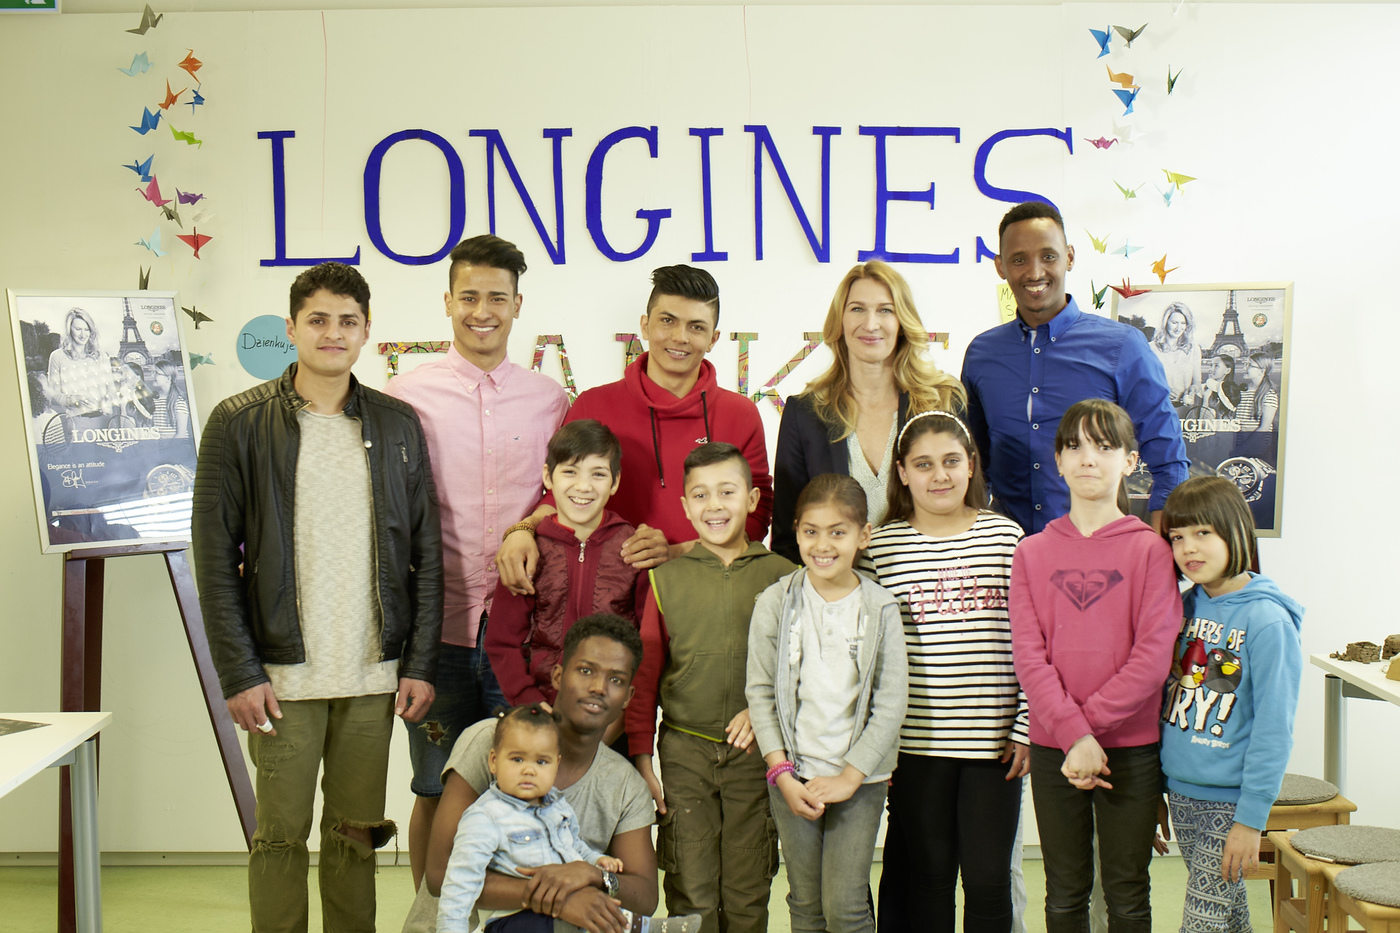 Longines Corporate Event: Children for Tomorrow welcomes Longines to the foundation's headquarters in the presence of Ambassador of Elegance Stefanie Graf 6